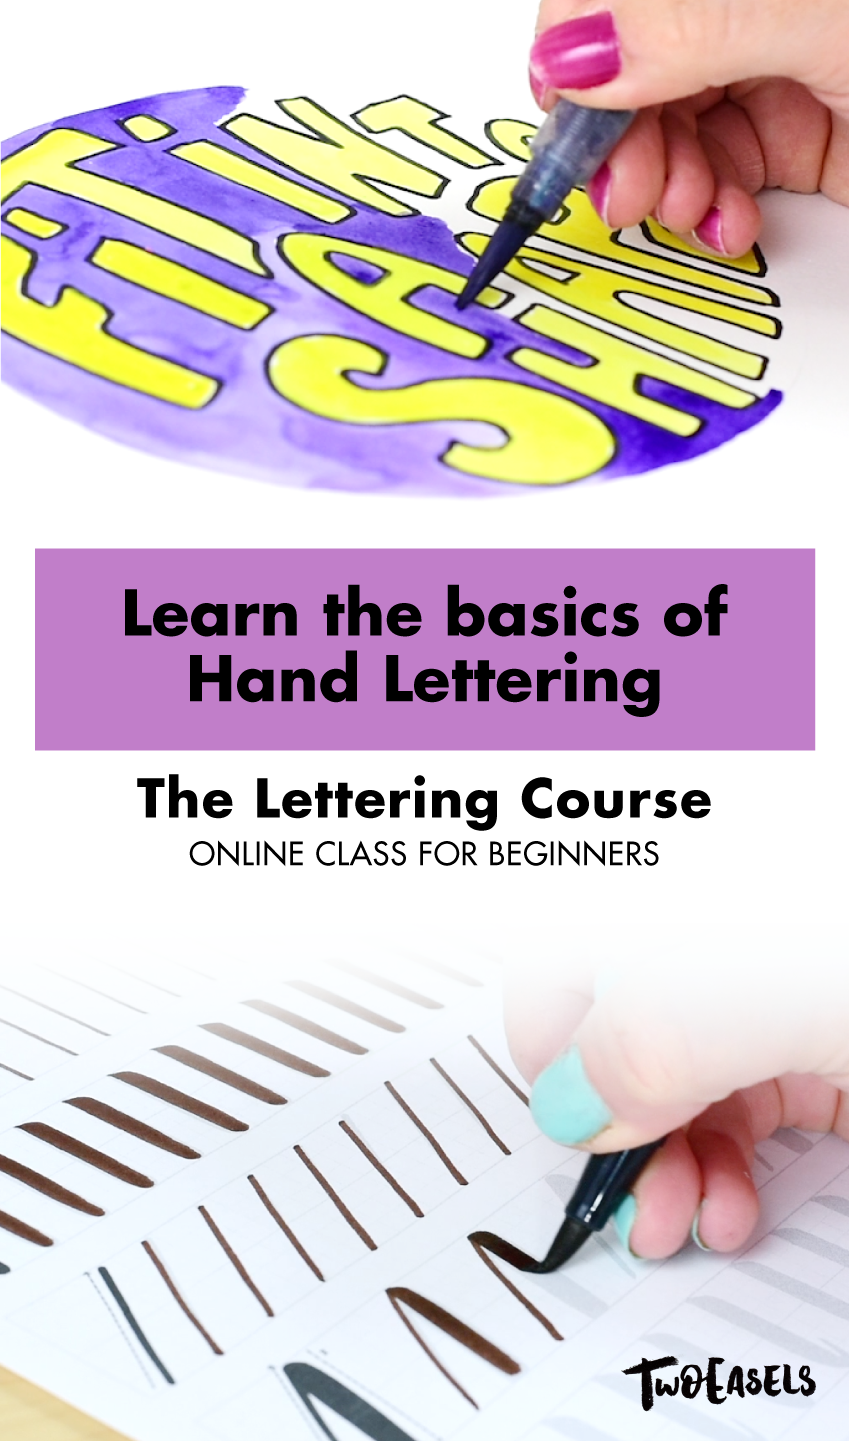 Learn the basics of hand lettering with this beginners course. Join the private community and participate in a challenge